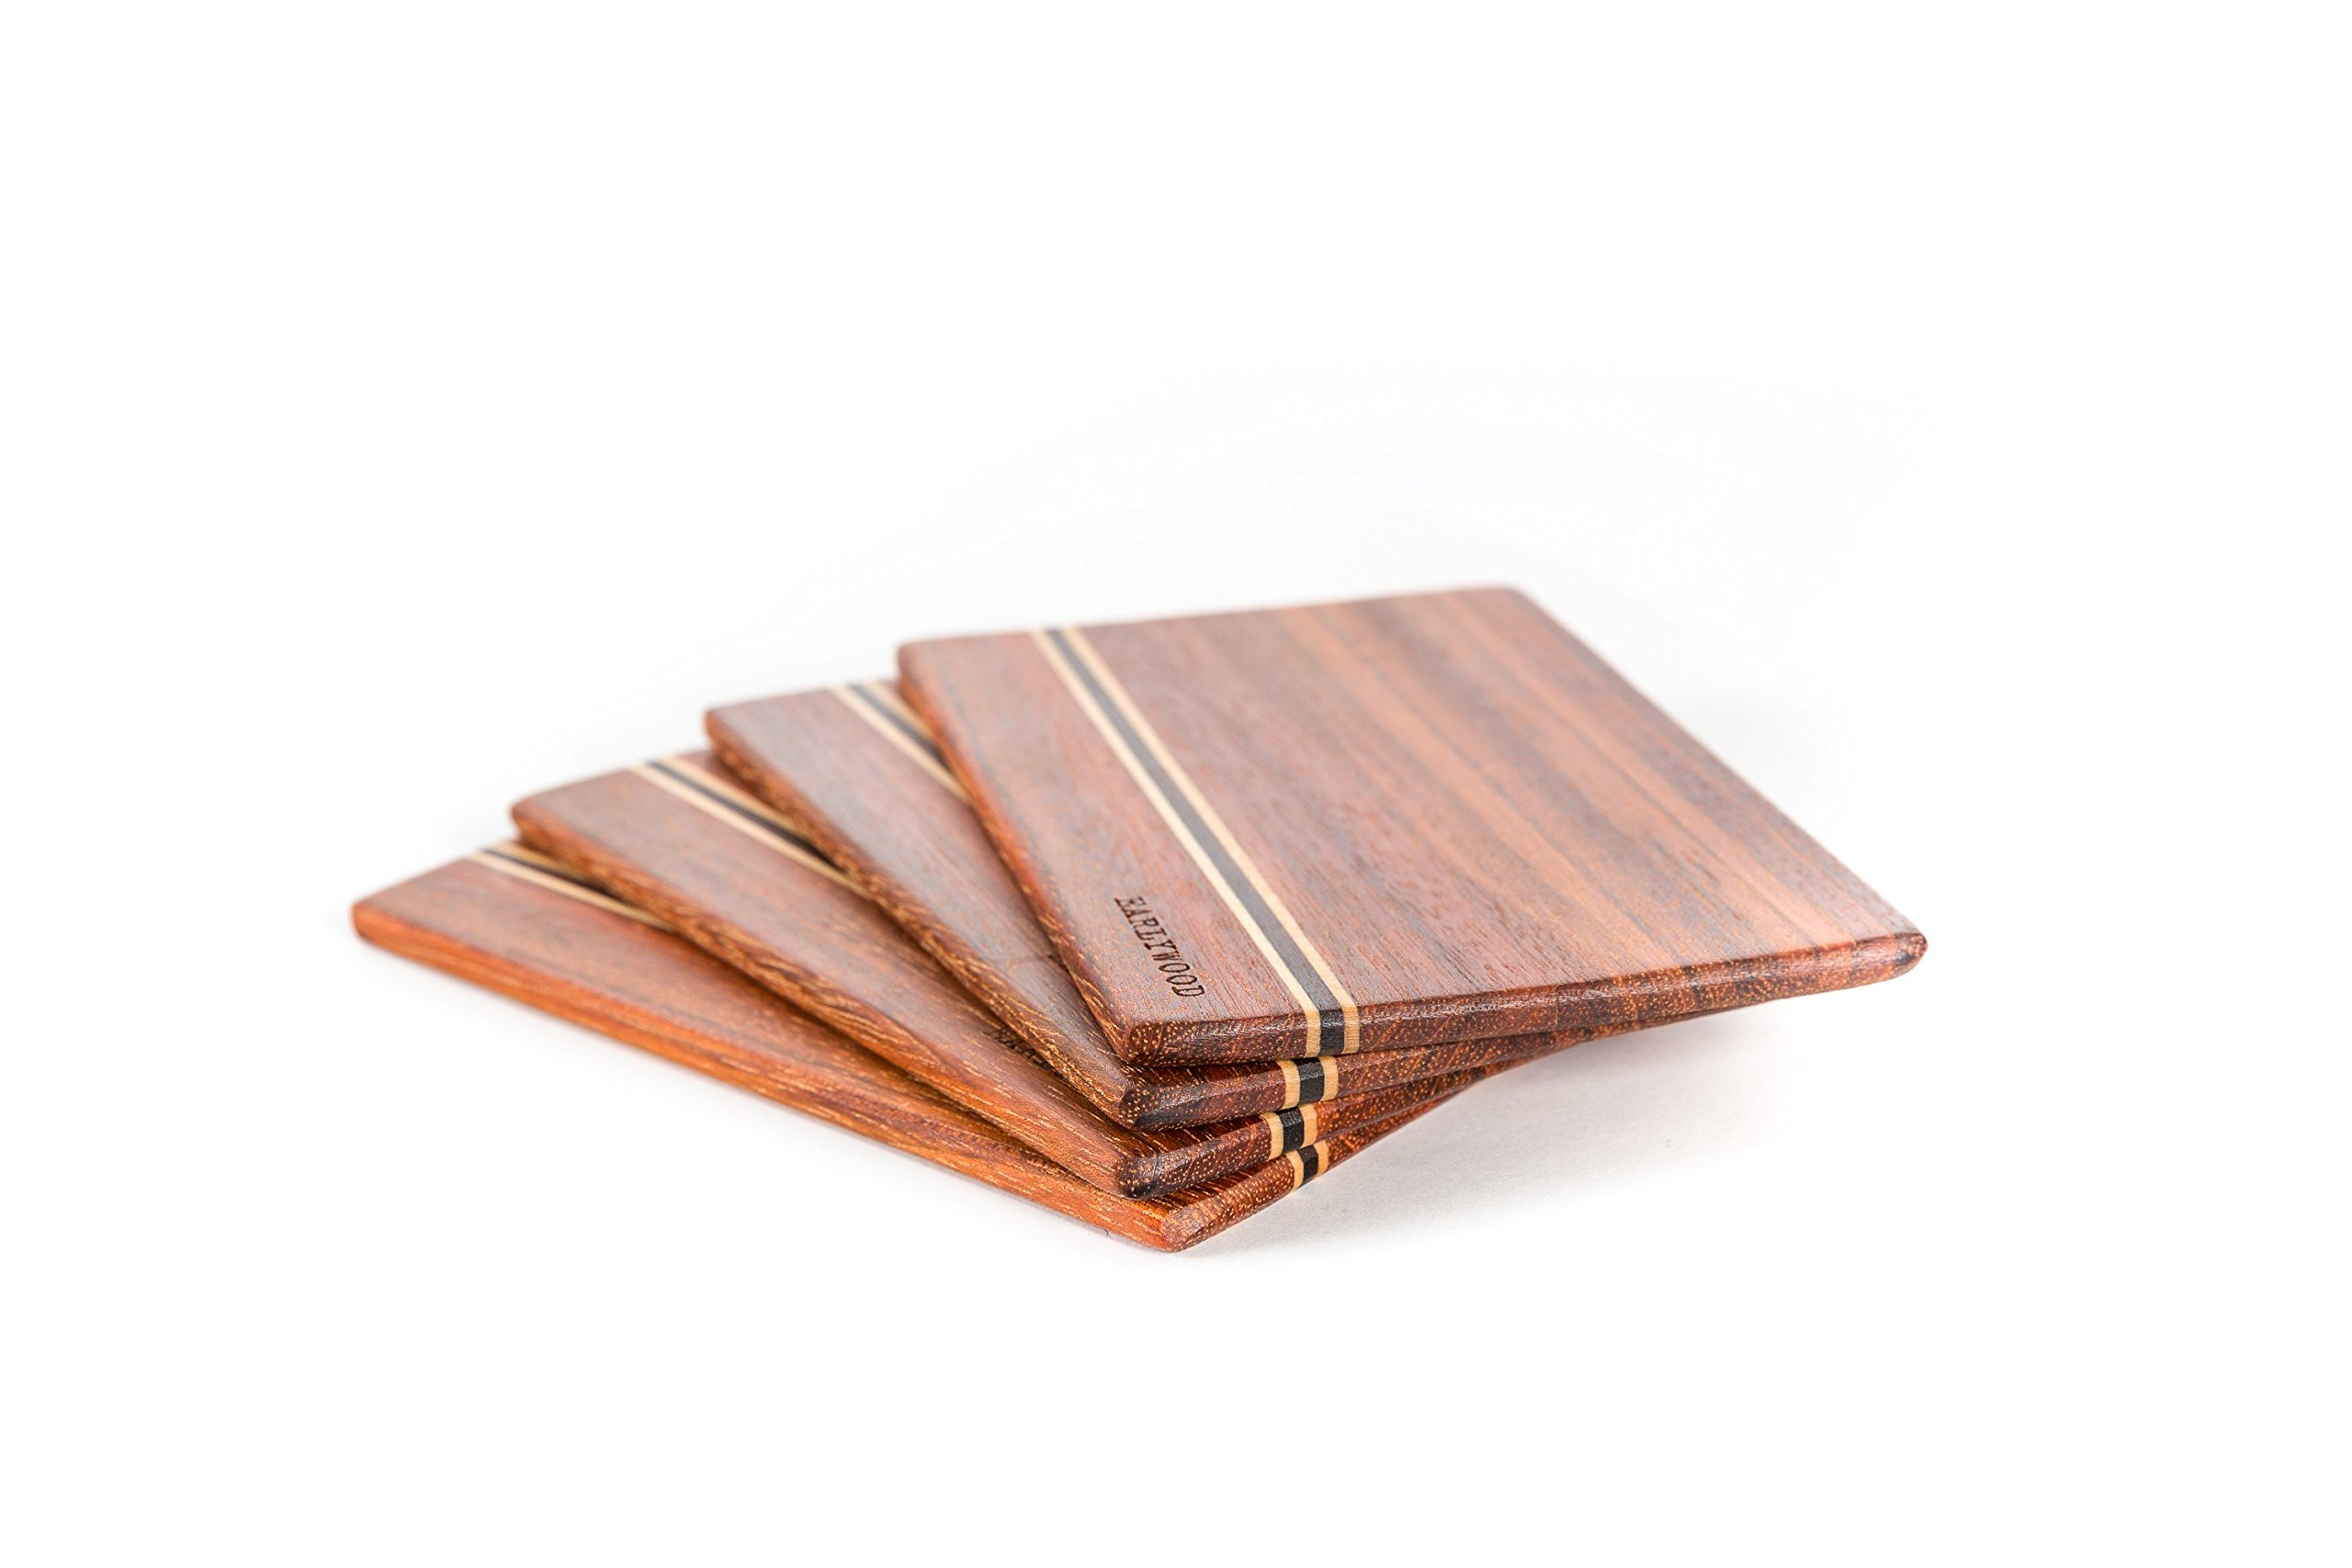 Small Wood Cutting Board Set. Set of 4 mini wooden cutting boards. Light and thin wood serving boards for wood cheese boards, spoon rests, trivets, wood serving set or bar cutting board set. The best! by Earlywood (Image #9)